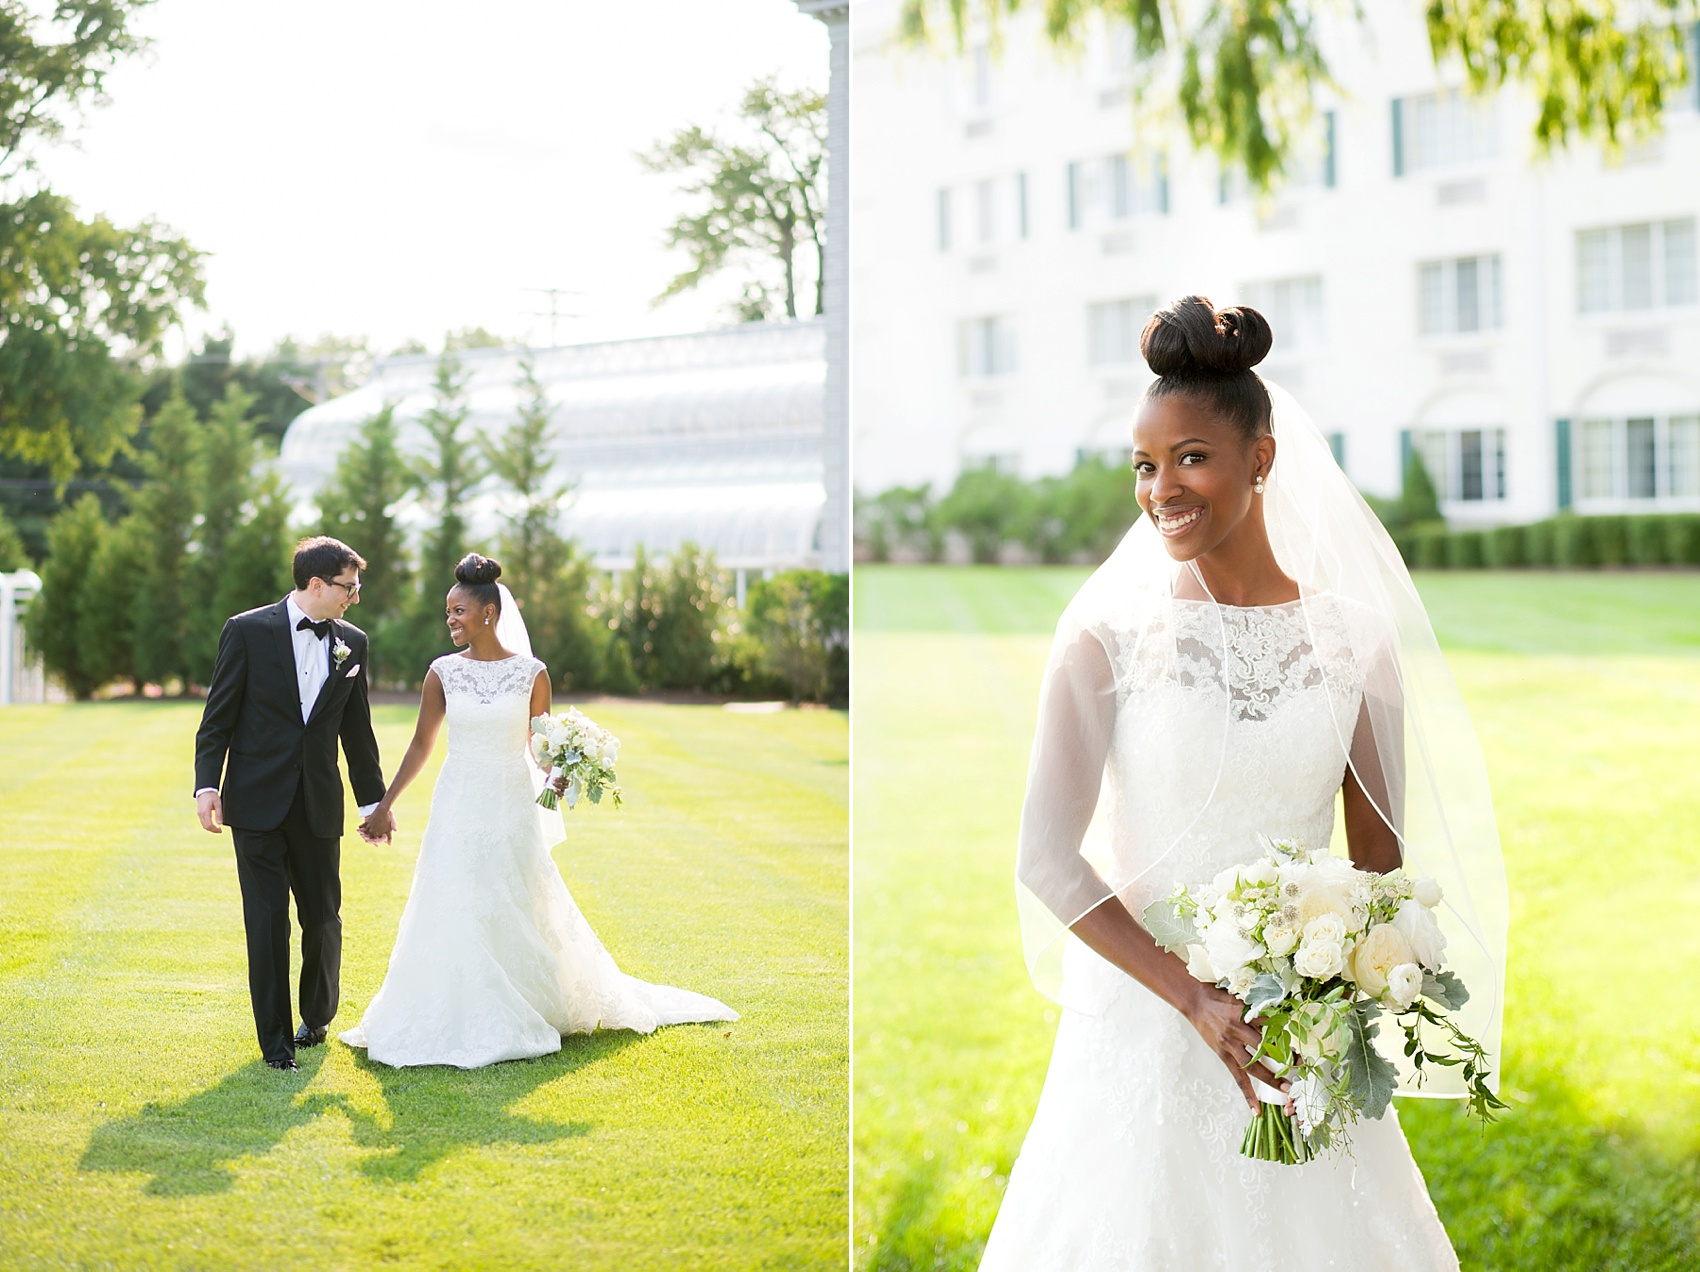 Bride and groom at The Conservatory at the Madison Hotel, New Jersey. Photos by Mikkel Paige Photography.